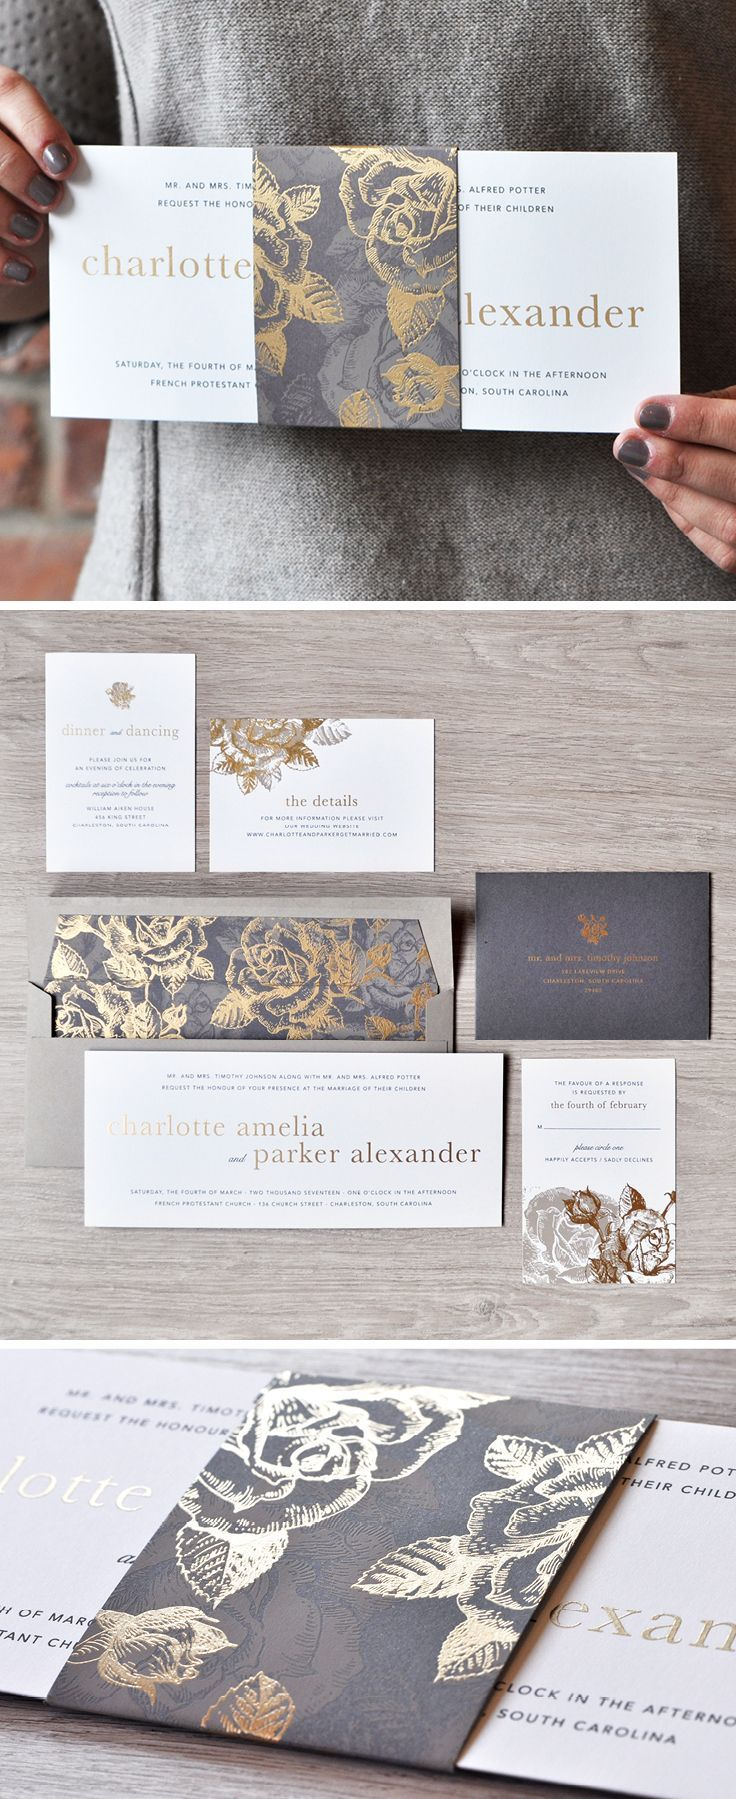 A stunning gold and grey wedding invitation design from Engaging Papers. What do we love most? The floral pattern and belly band!   https://engagingpapers.com/wedding-invitations?product_id=488